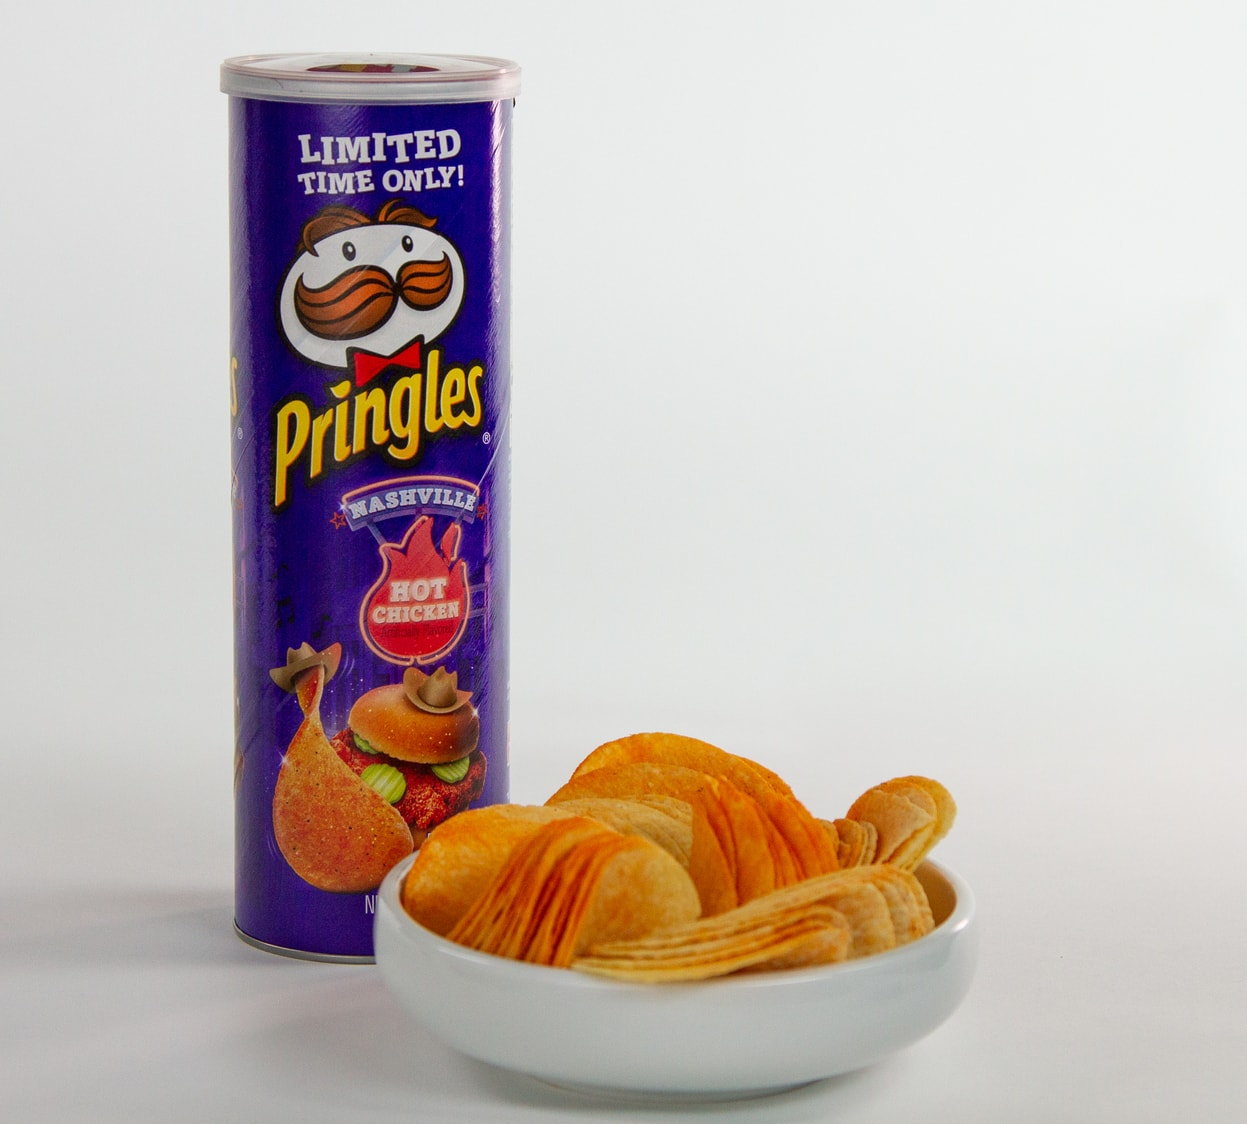 nashville hot chicken pringles